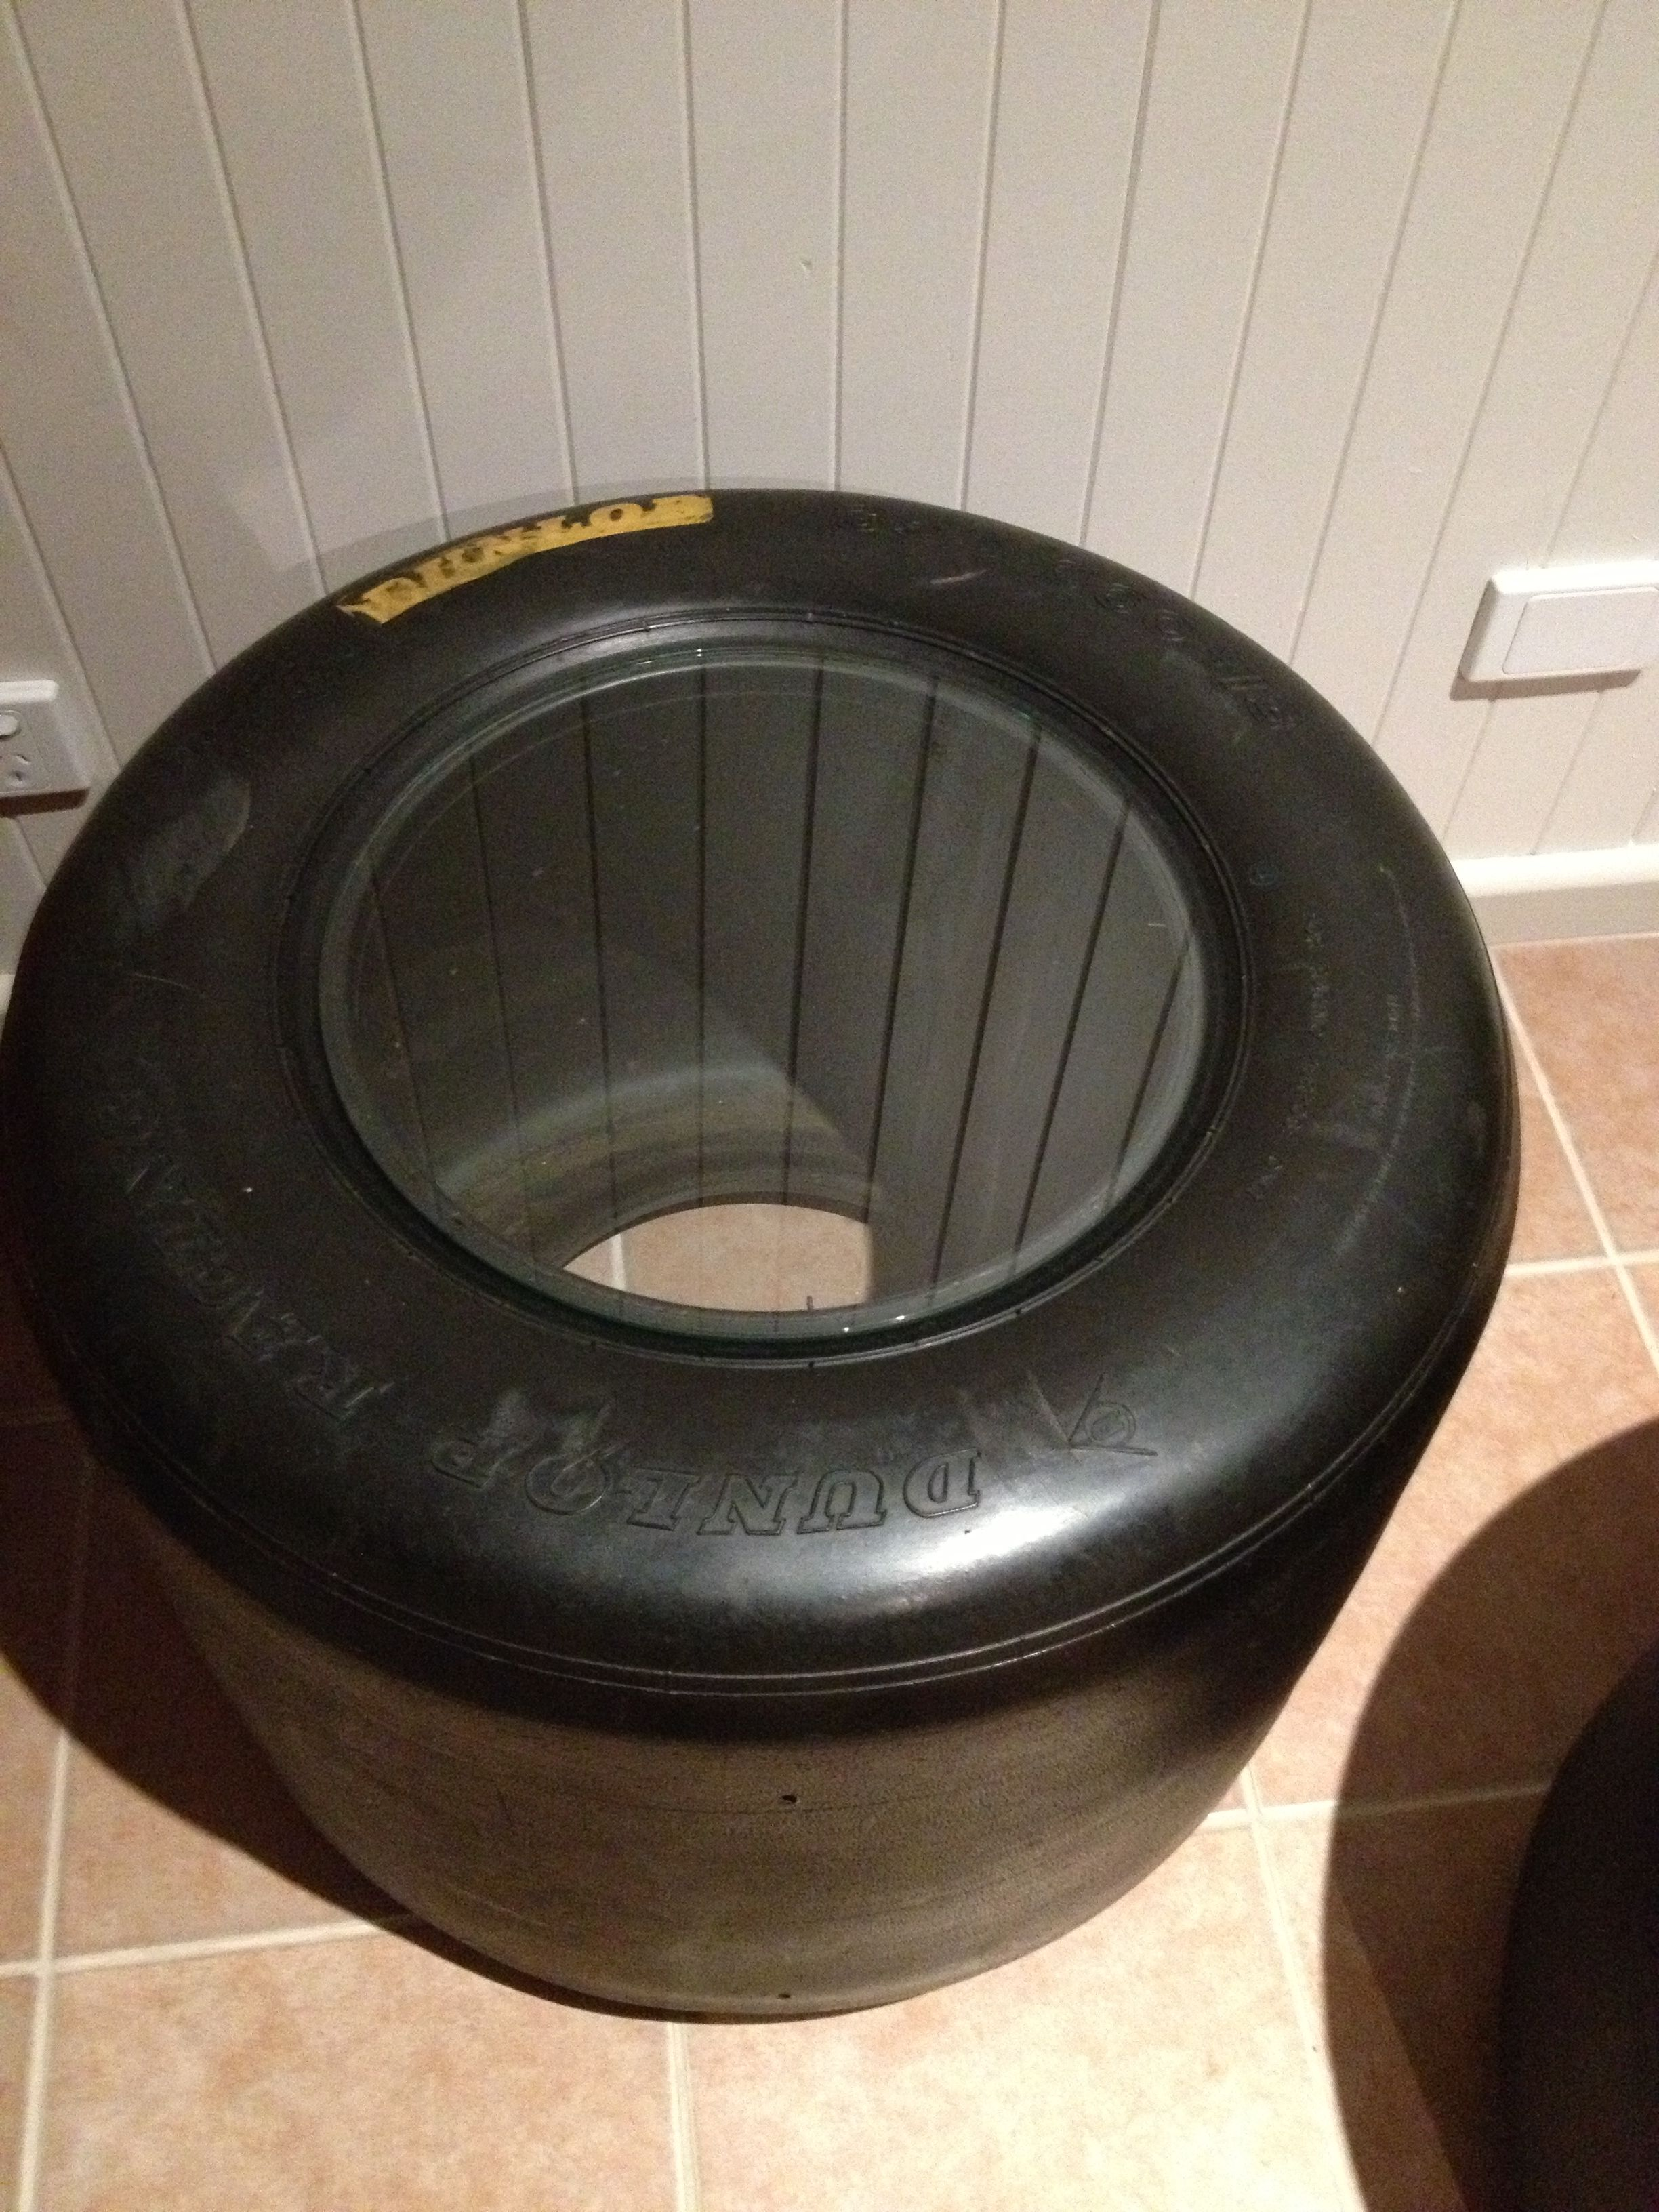 Racing car tyres slicks made into coffee table for my husbands